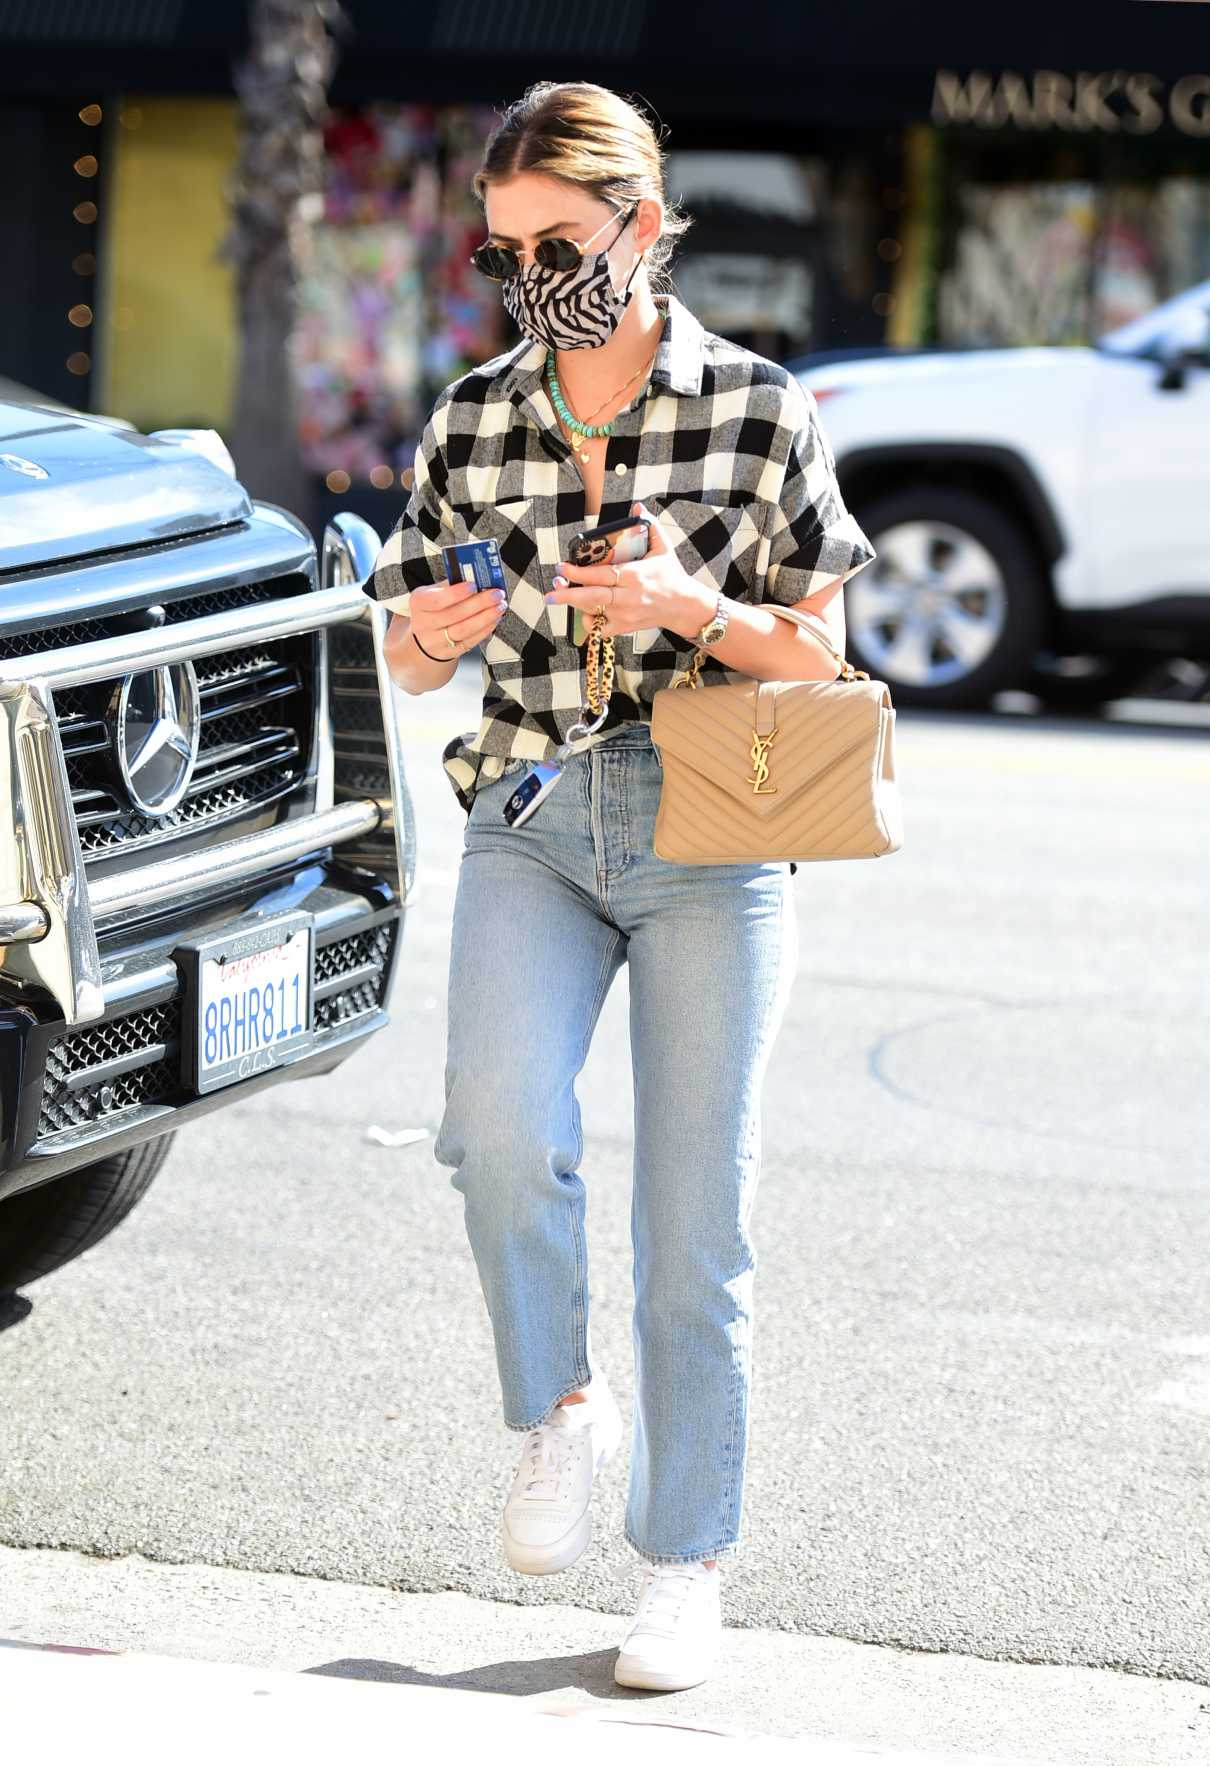 Lucy Hale in a Plaid Shirt